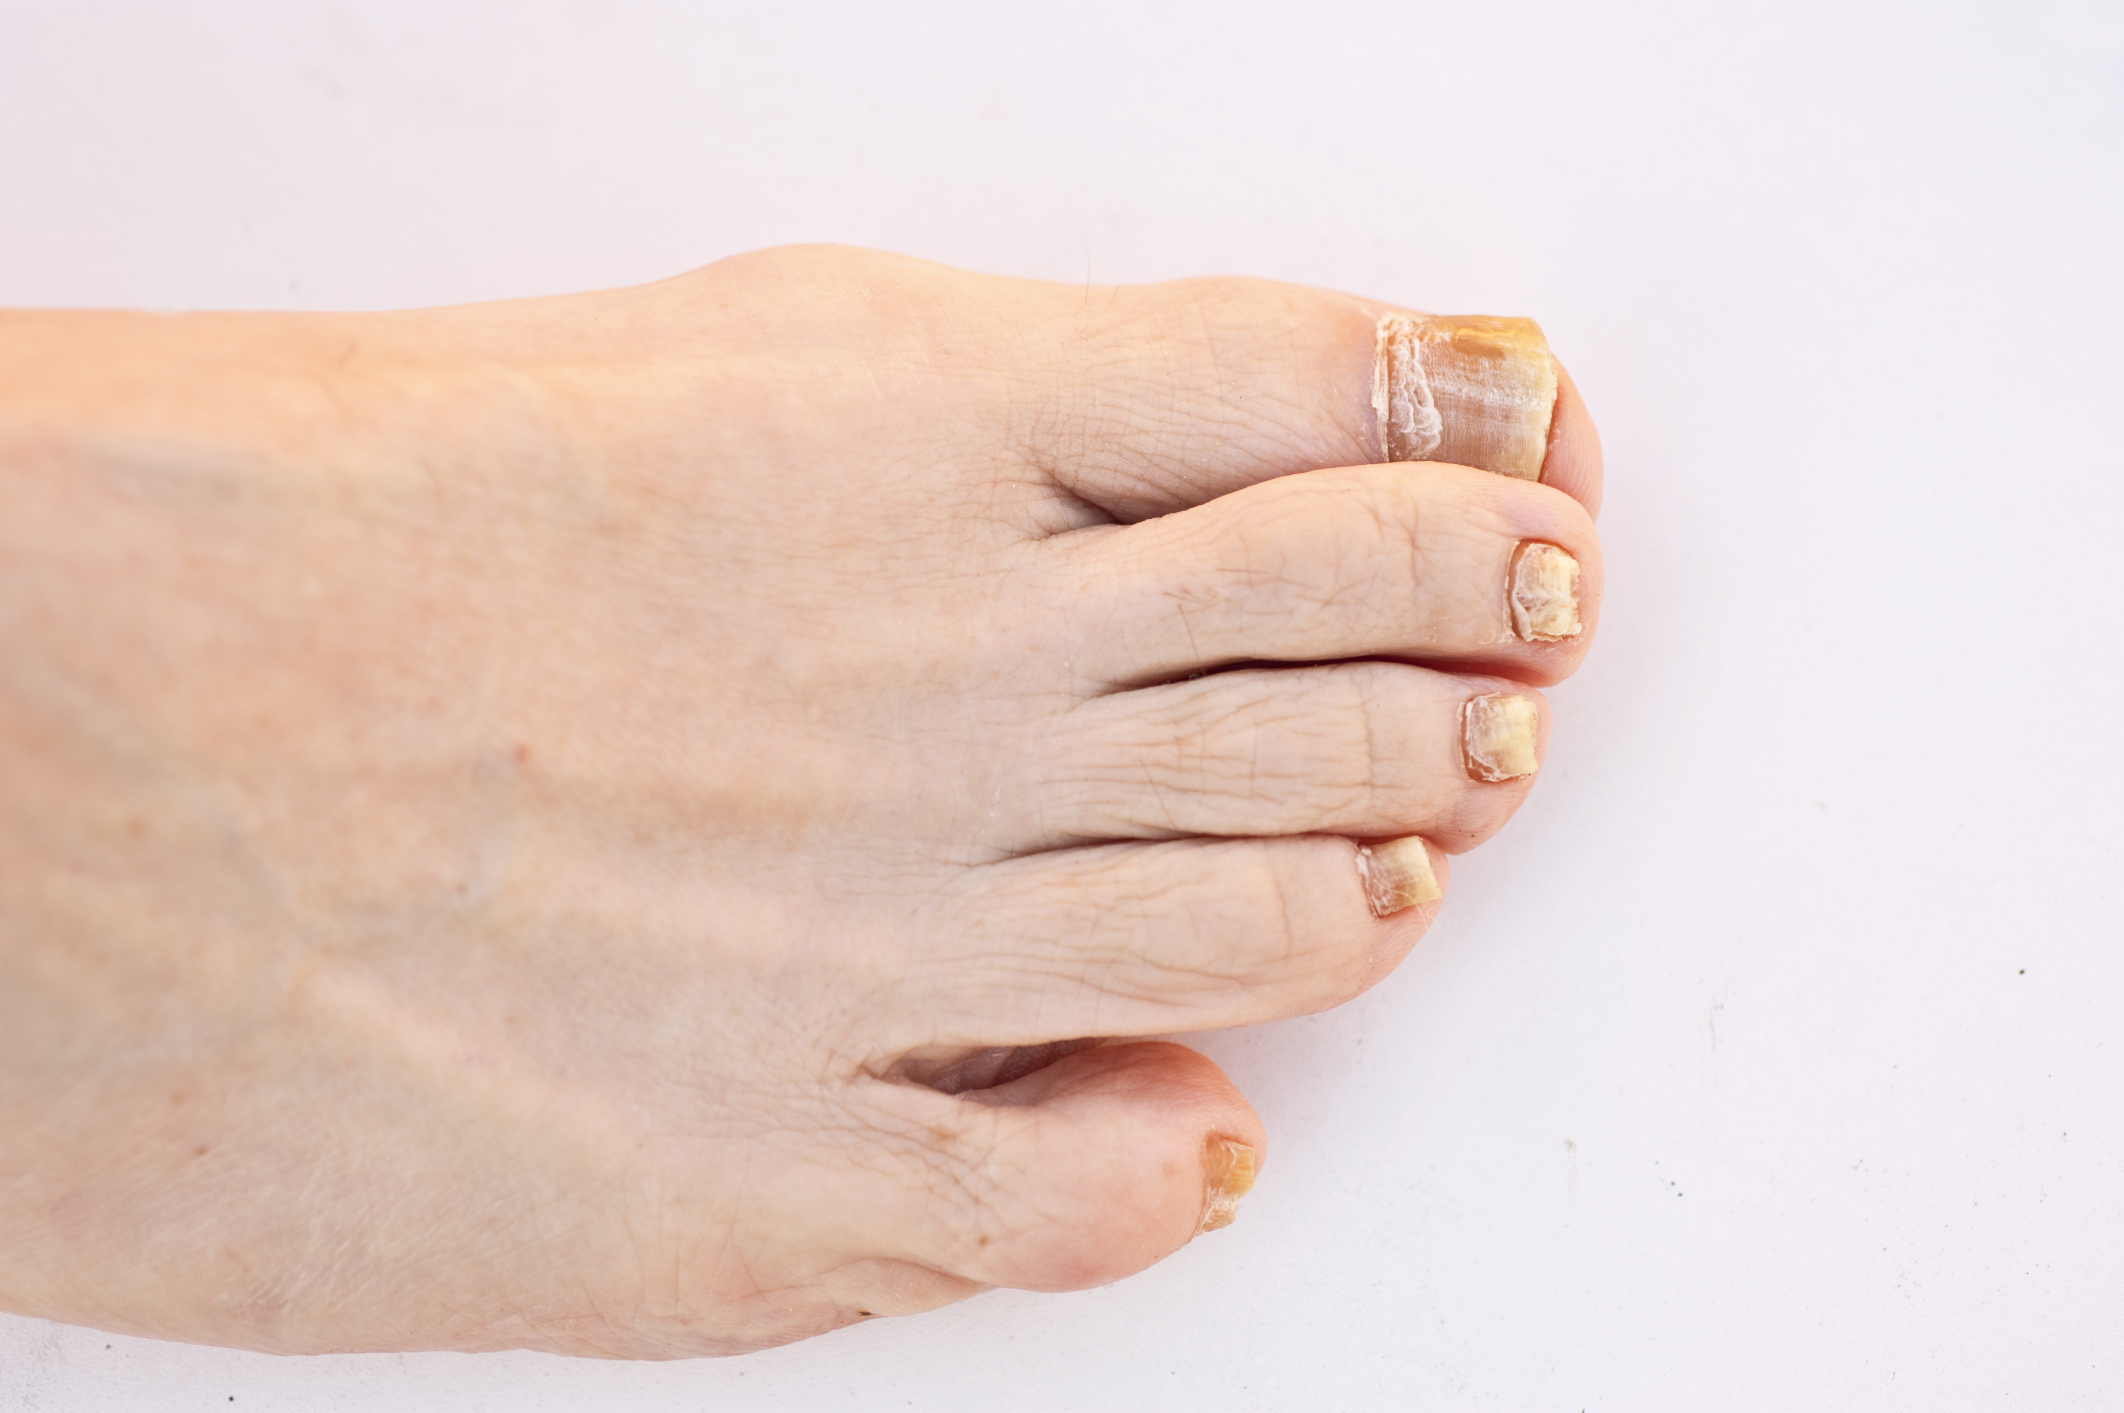 What Are the Causes of Toenail Discoloration? | LIVESTRONG.COM